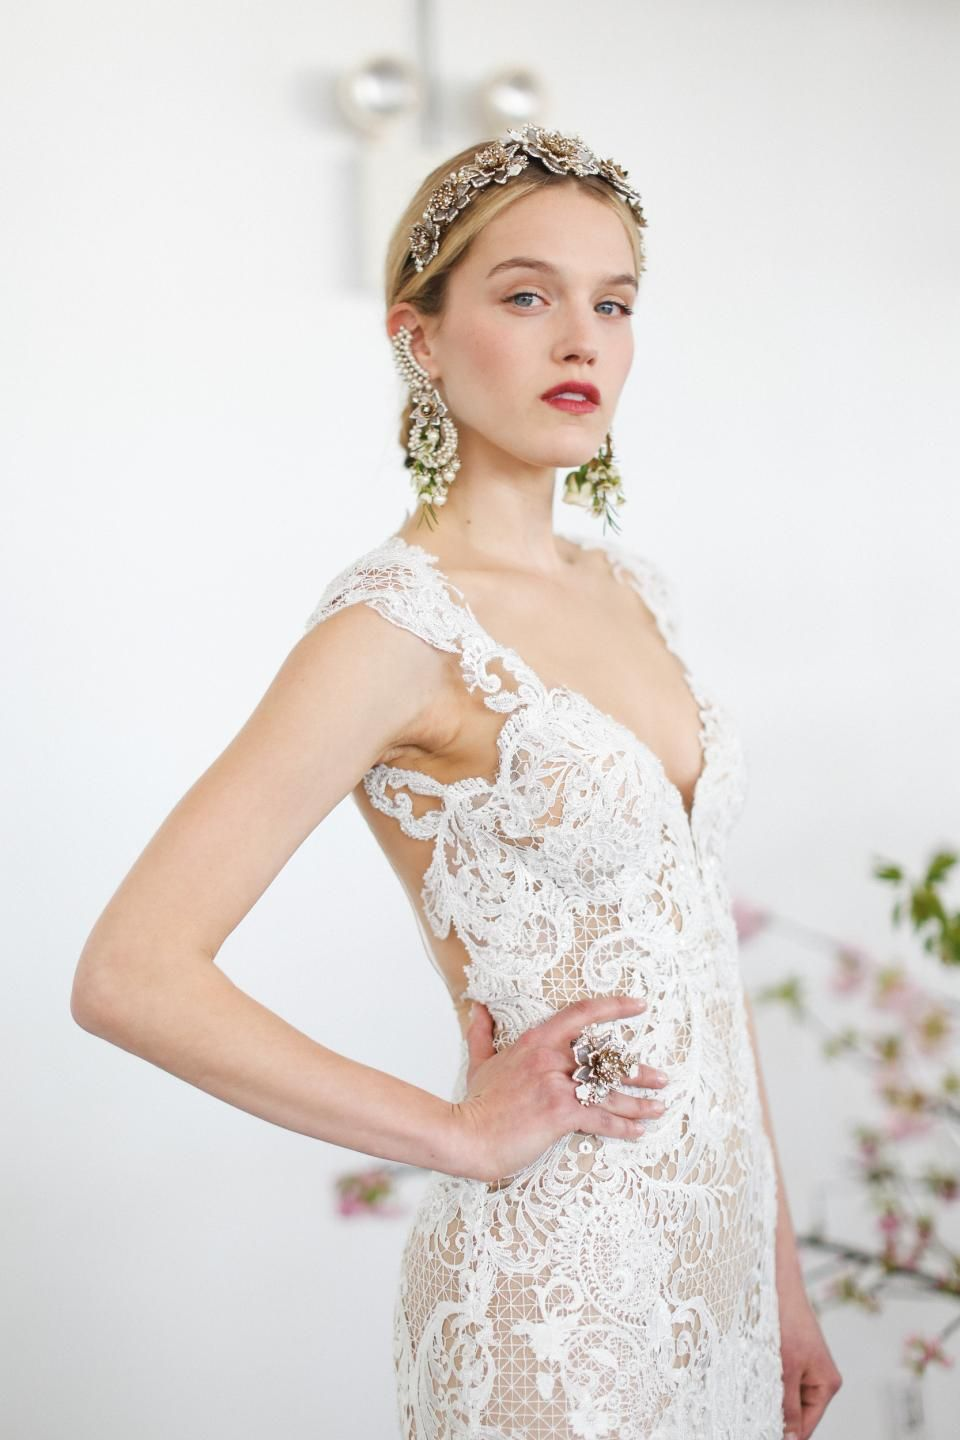 Marchesa Bridal Spring 2017 / Wedding Style Inspiration / LANE